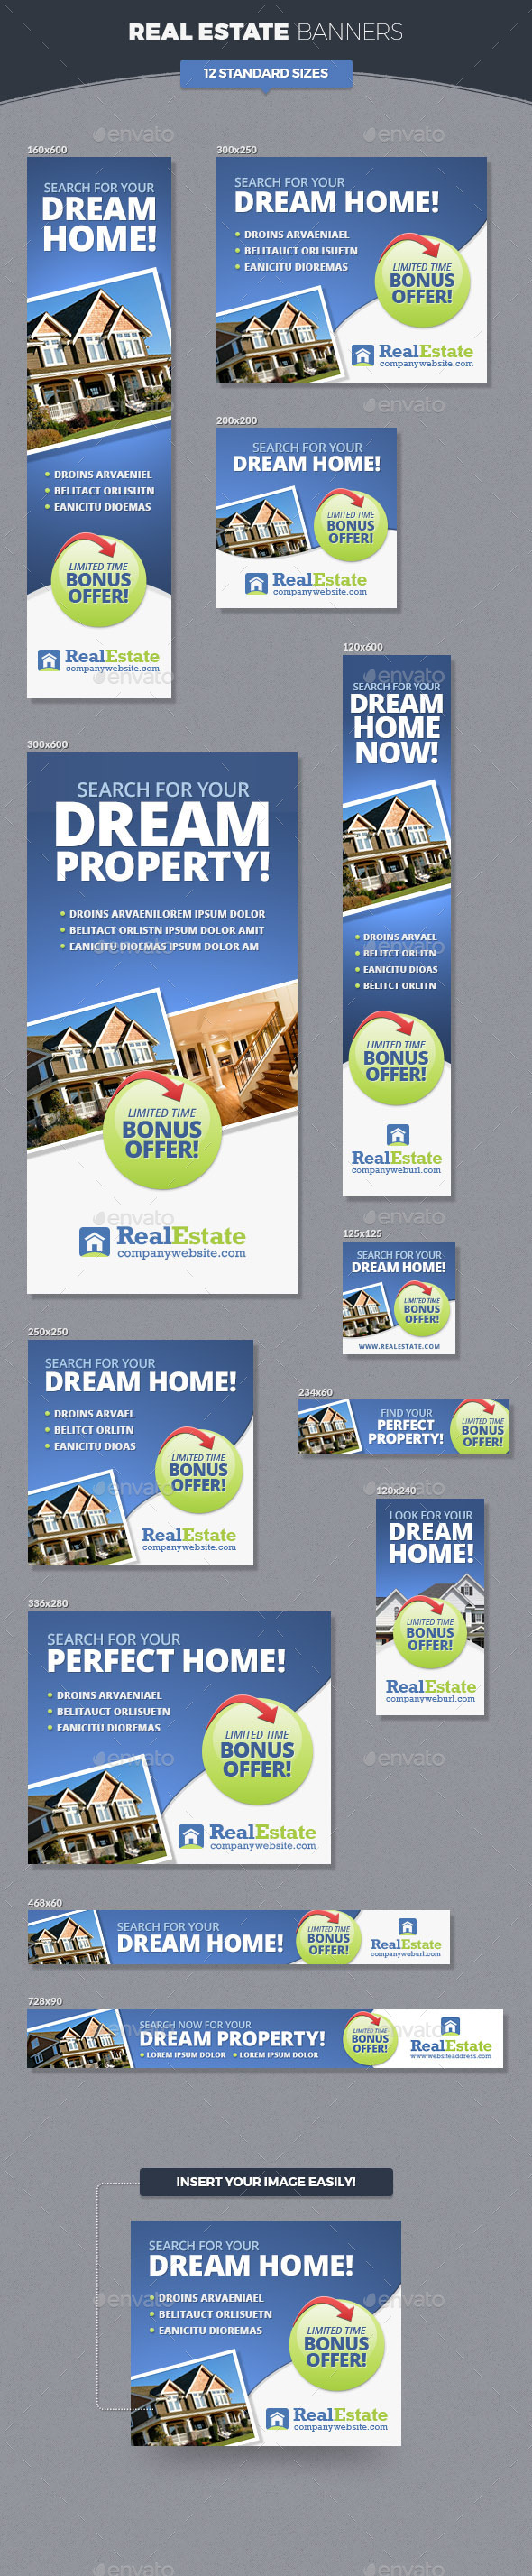 GraphicRiver Real Estate Banner Ads 11453206